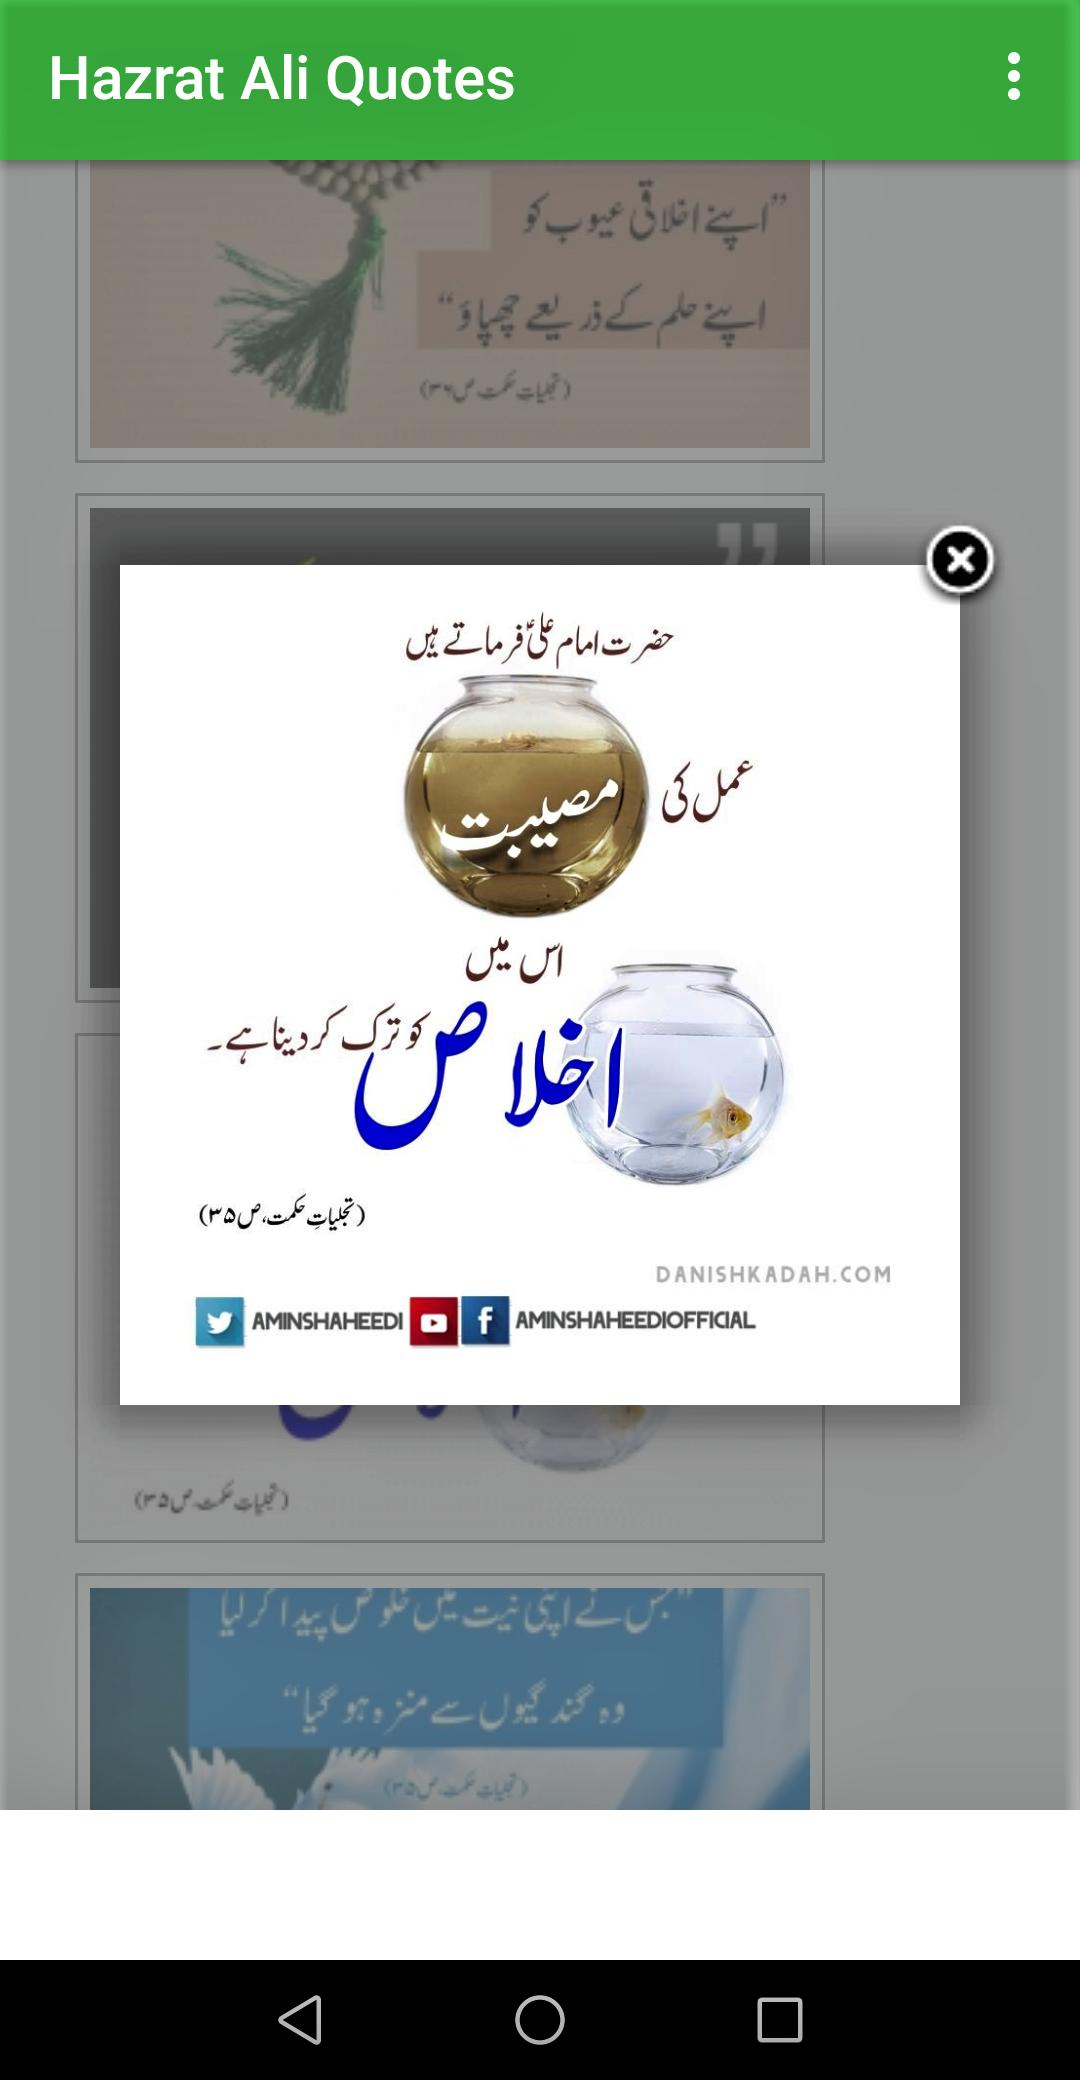 Hazrat Ali Quotes for Android - APK Download